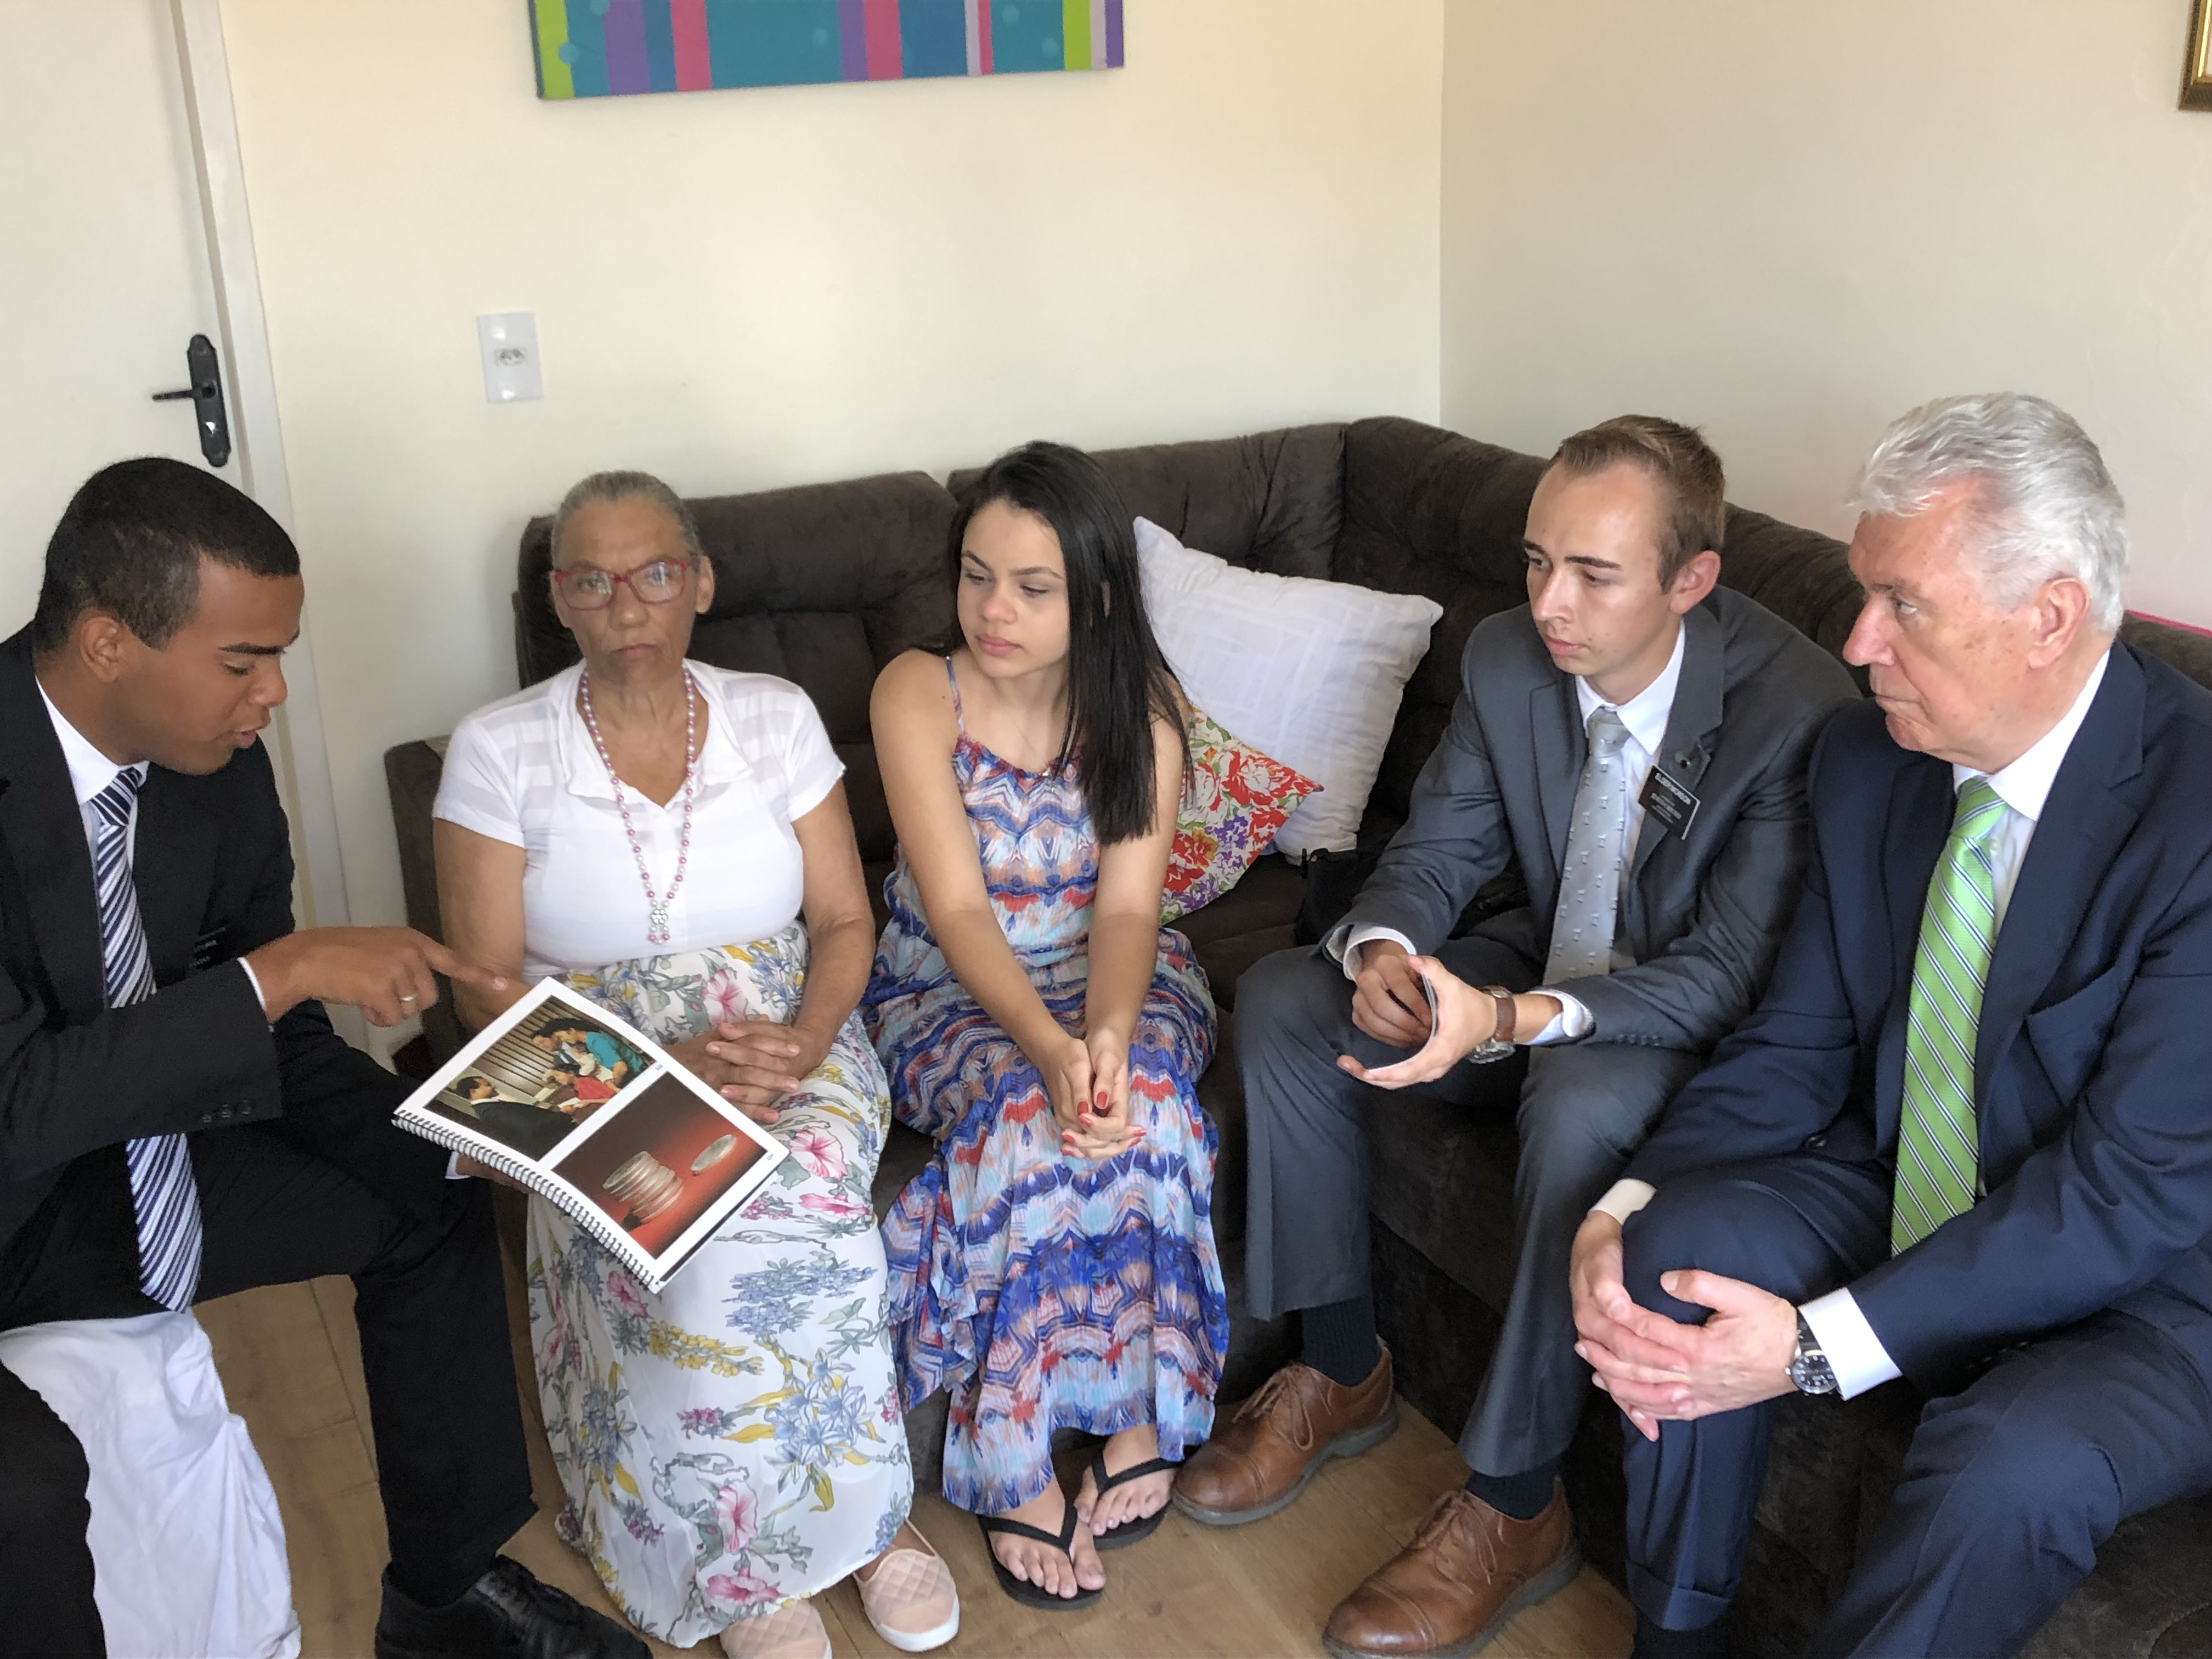 Elders Herick David Sousa Ventura and Robert David Monson of the Brazil Sao Paulo West Mission are joined by Elder Dieter F. Uchtdorf of the Quorum of the Twelve Apostles as they teach a grandmother and her two teenage daughters in February 2019.